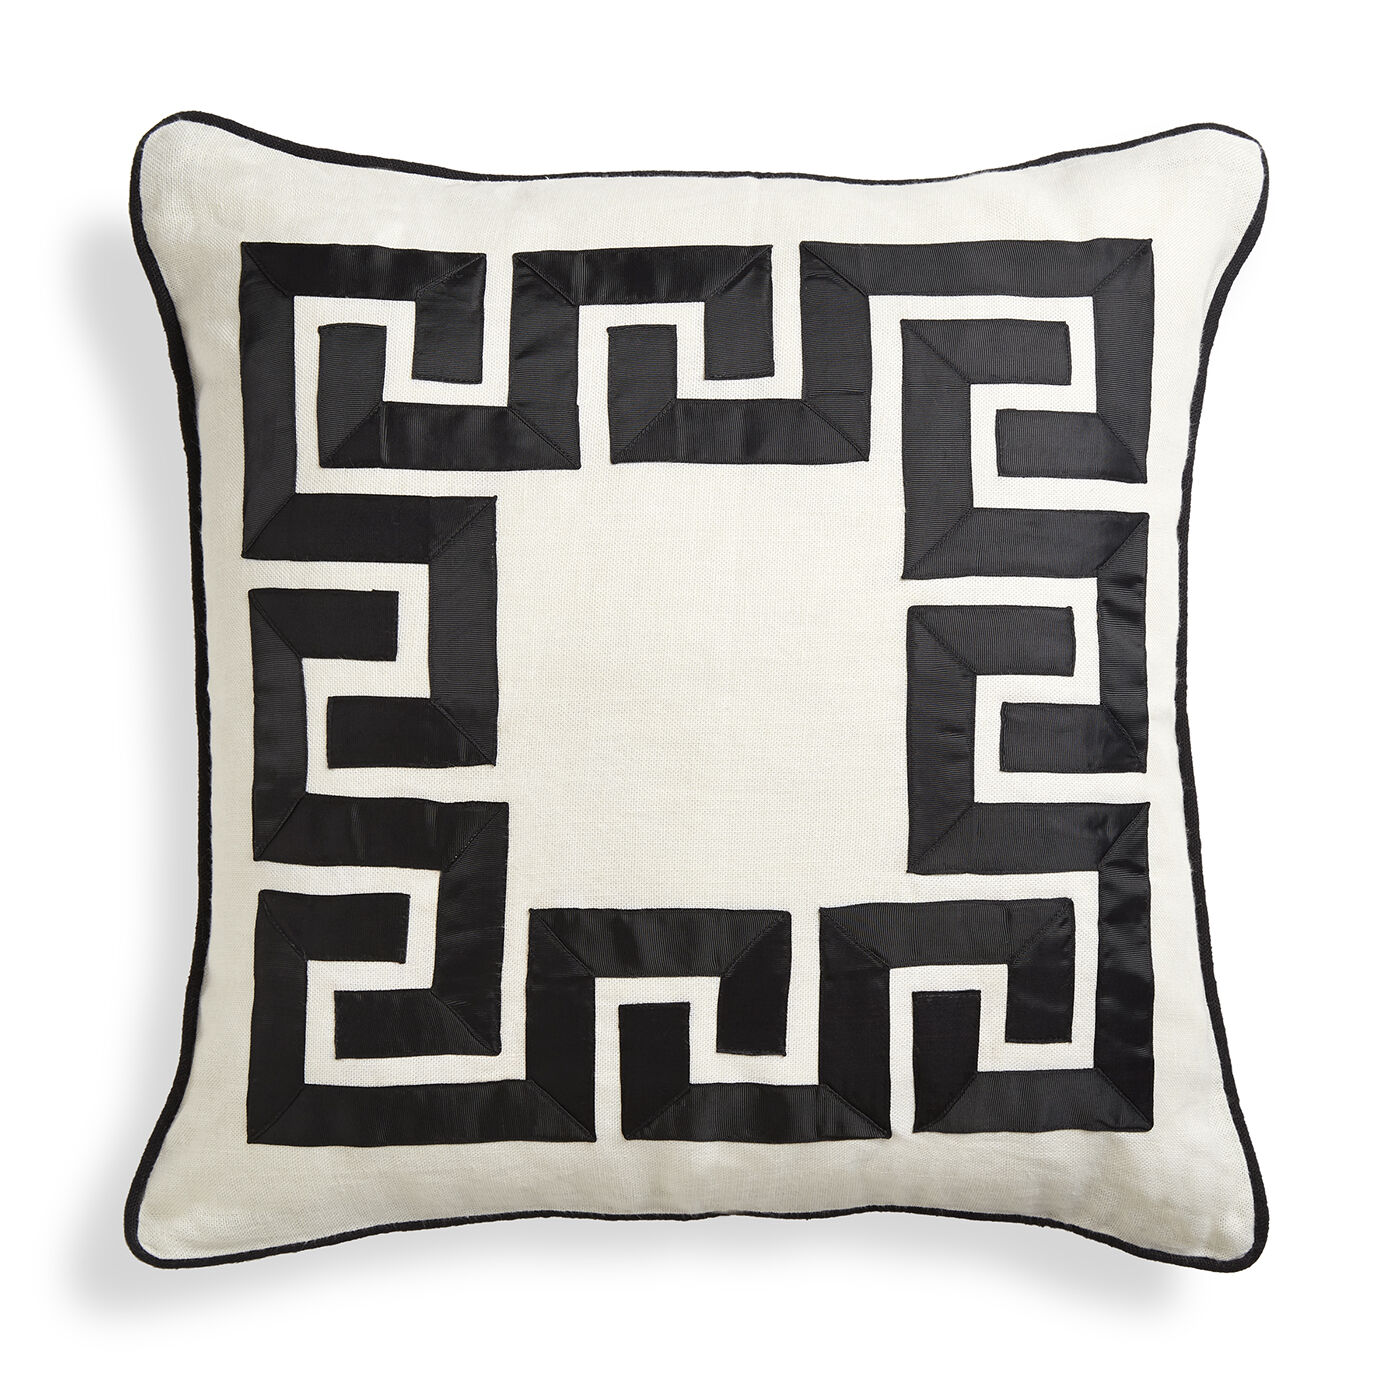 holding category for inventory positano greek key throw pillow